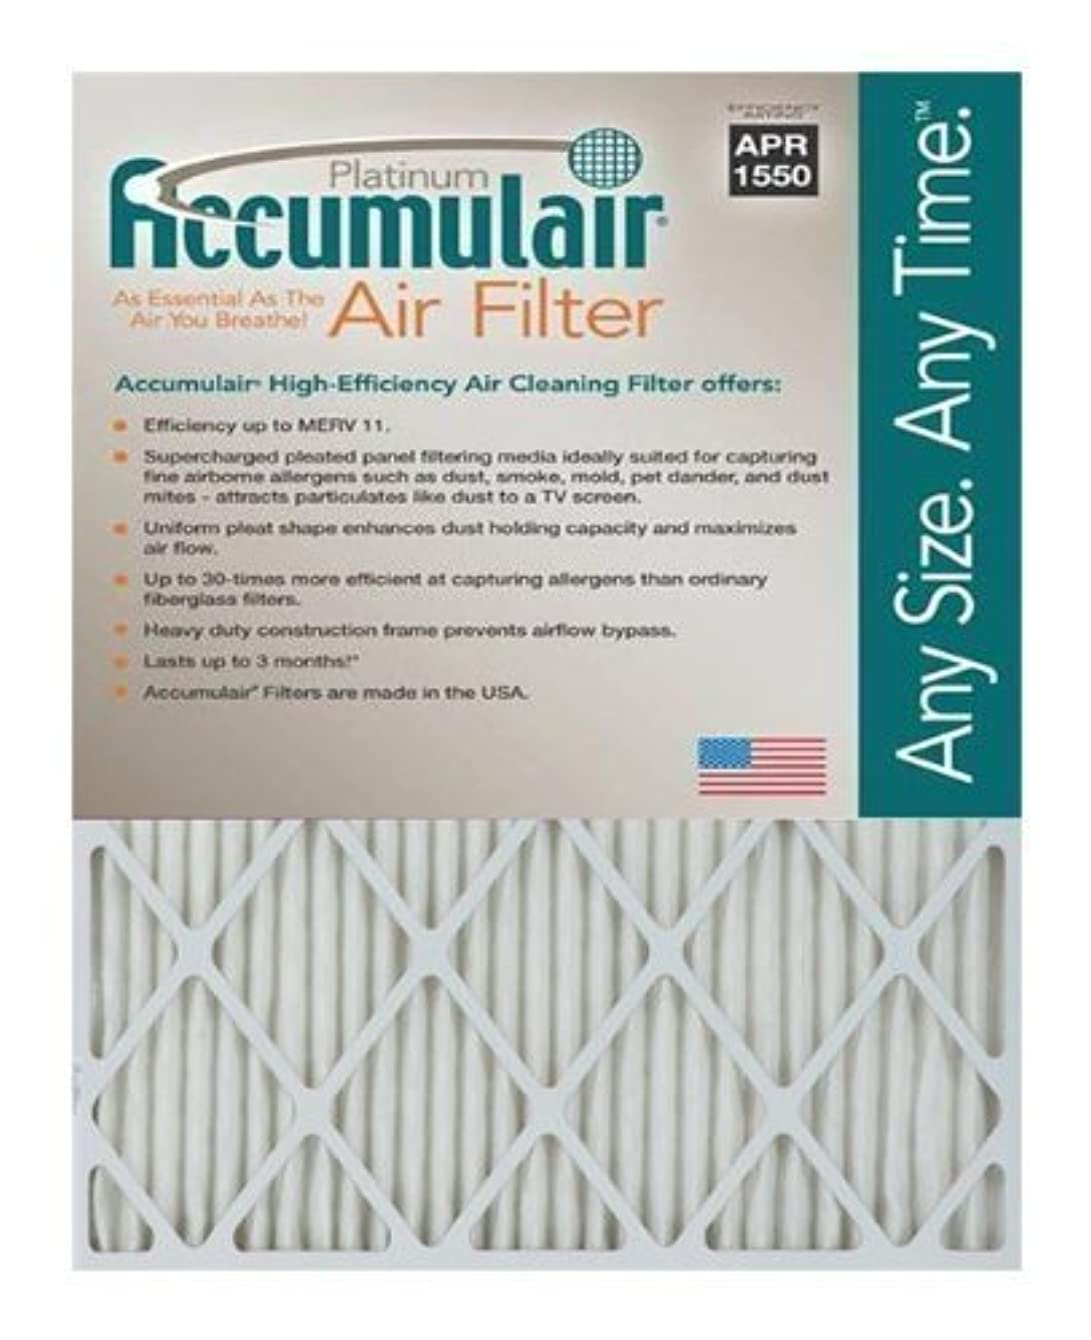 Accumulair Platinum 16x25x1 (15.75x24.75) MERV 11 Air Filter/Furnace Filters (4 pack)